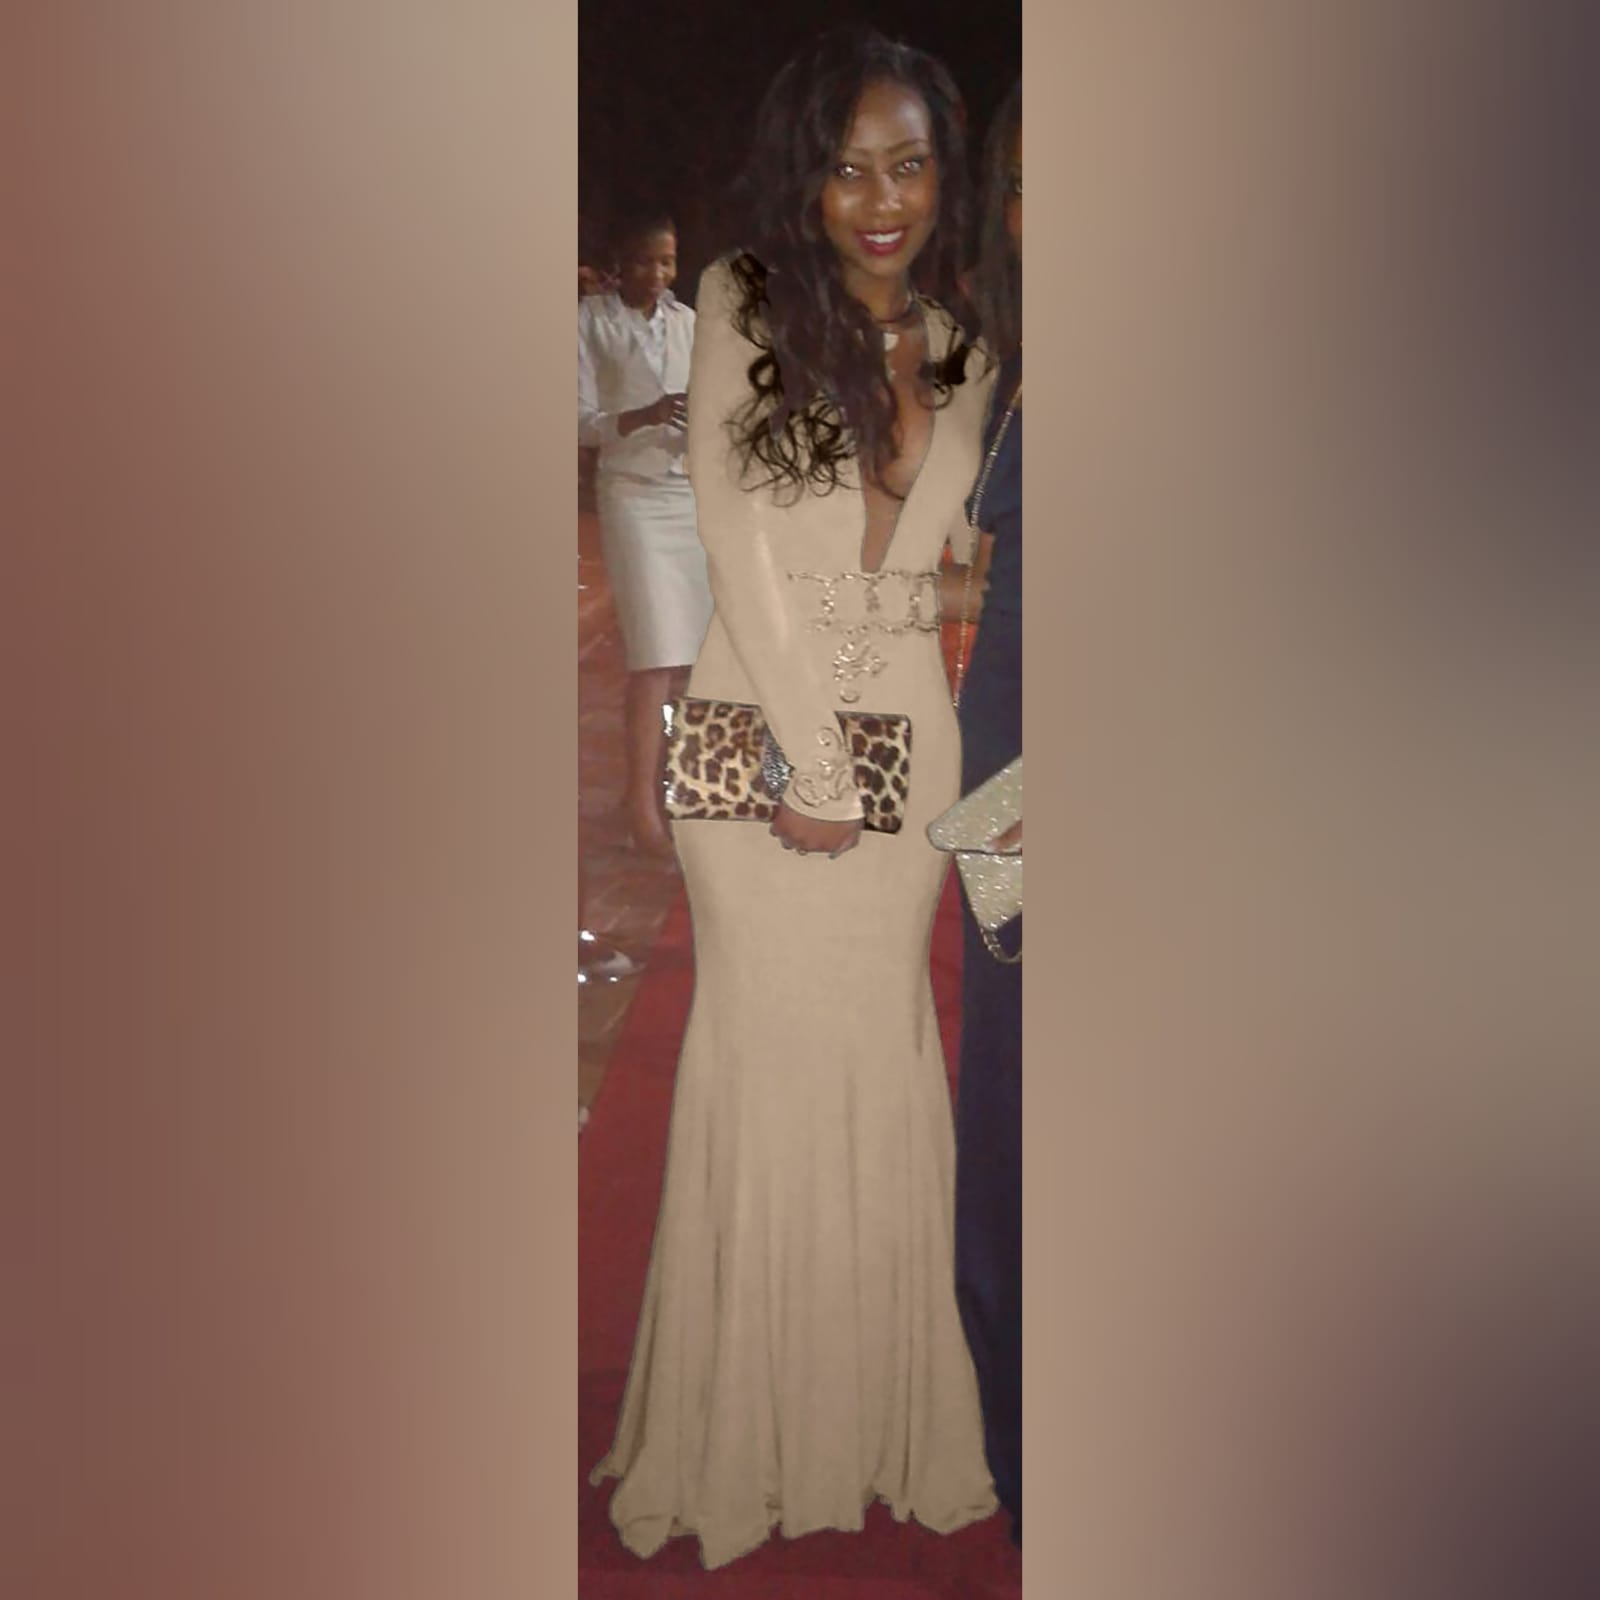 Plunging neckline beige prom dance dress 1 beige soft mermaid, prom dance dress with a plunging neckline and a v back. With long sleeves, detailed with gold applique, with gold beads, creating a belt. Applique on the shoulders and sleeve cuffs.